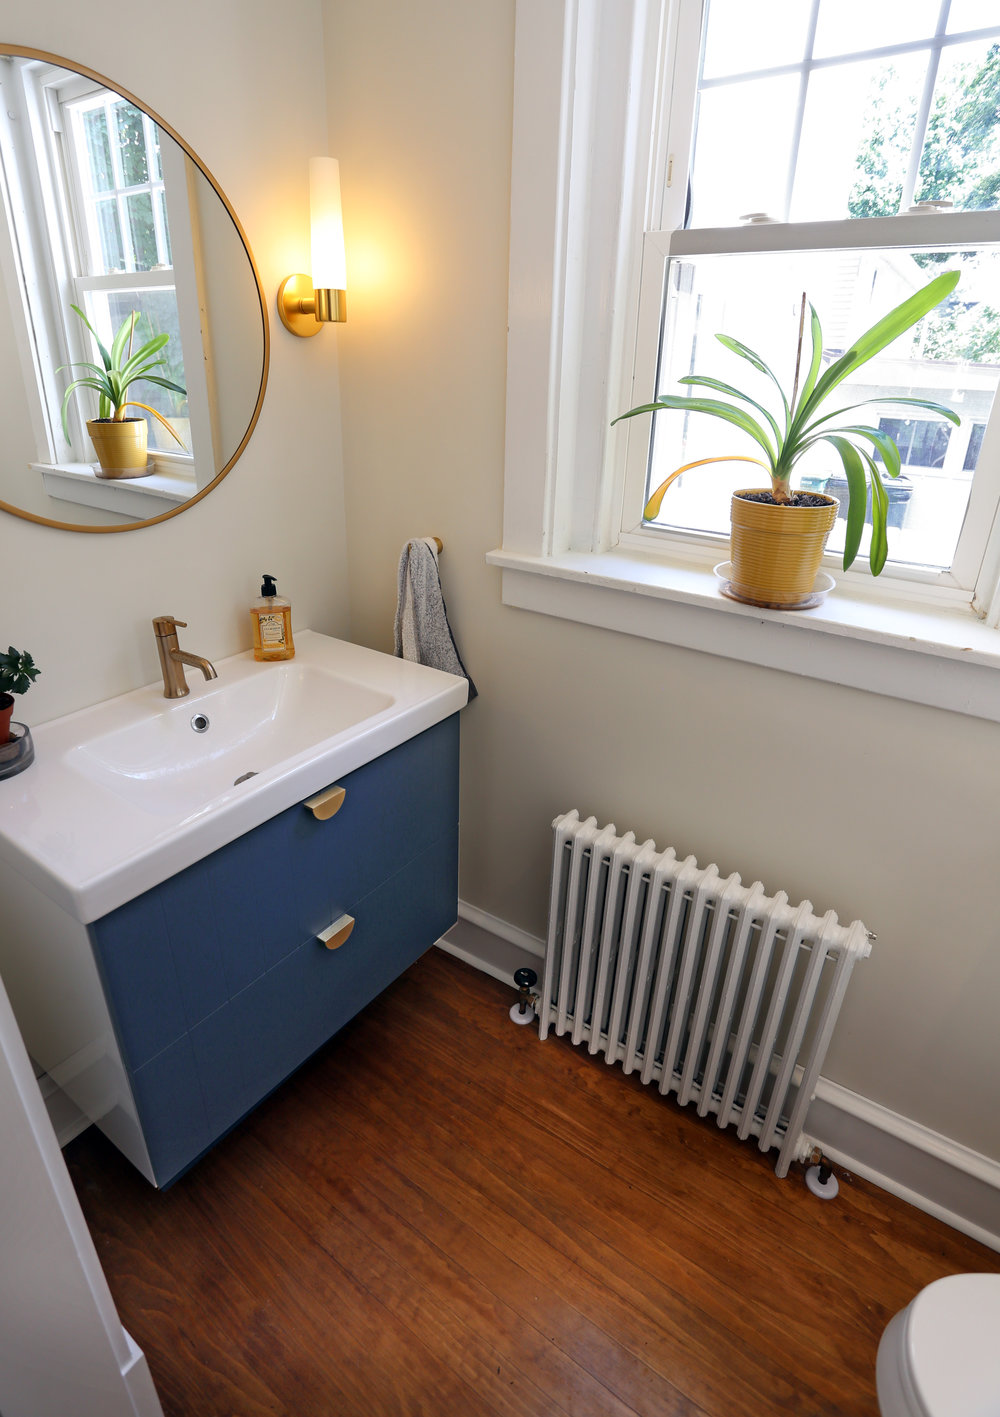 In the original mudroom there had been a small water closet. Part of the renovation included expanding it into a proper powder room. This powder room got new fixtures, cabinetry, lighting, flooring, and a slimline radiator.